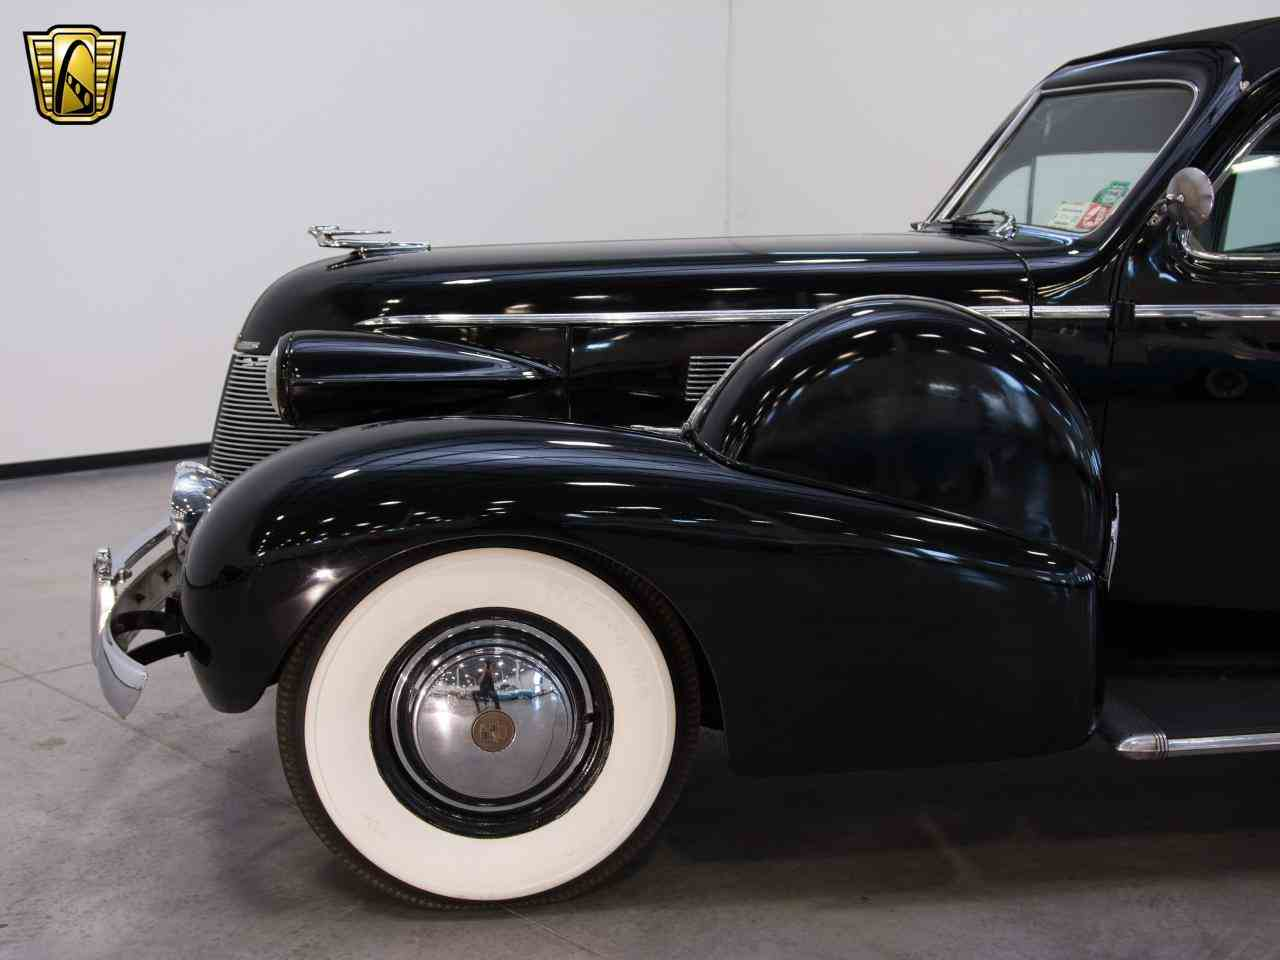 Large Picture of '39 Cadillac 7 Passenger Touring W/ Trunk located in Kenosha Wisconsin - $58,000.00 - KHP0